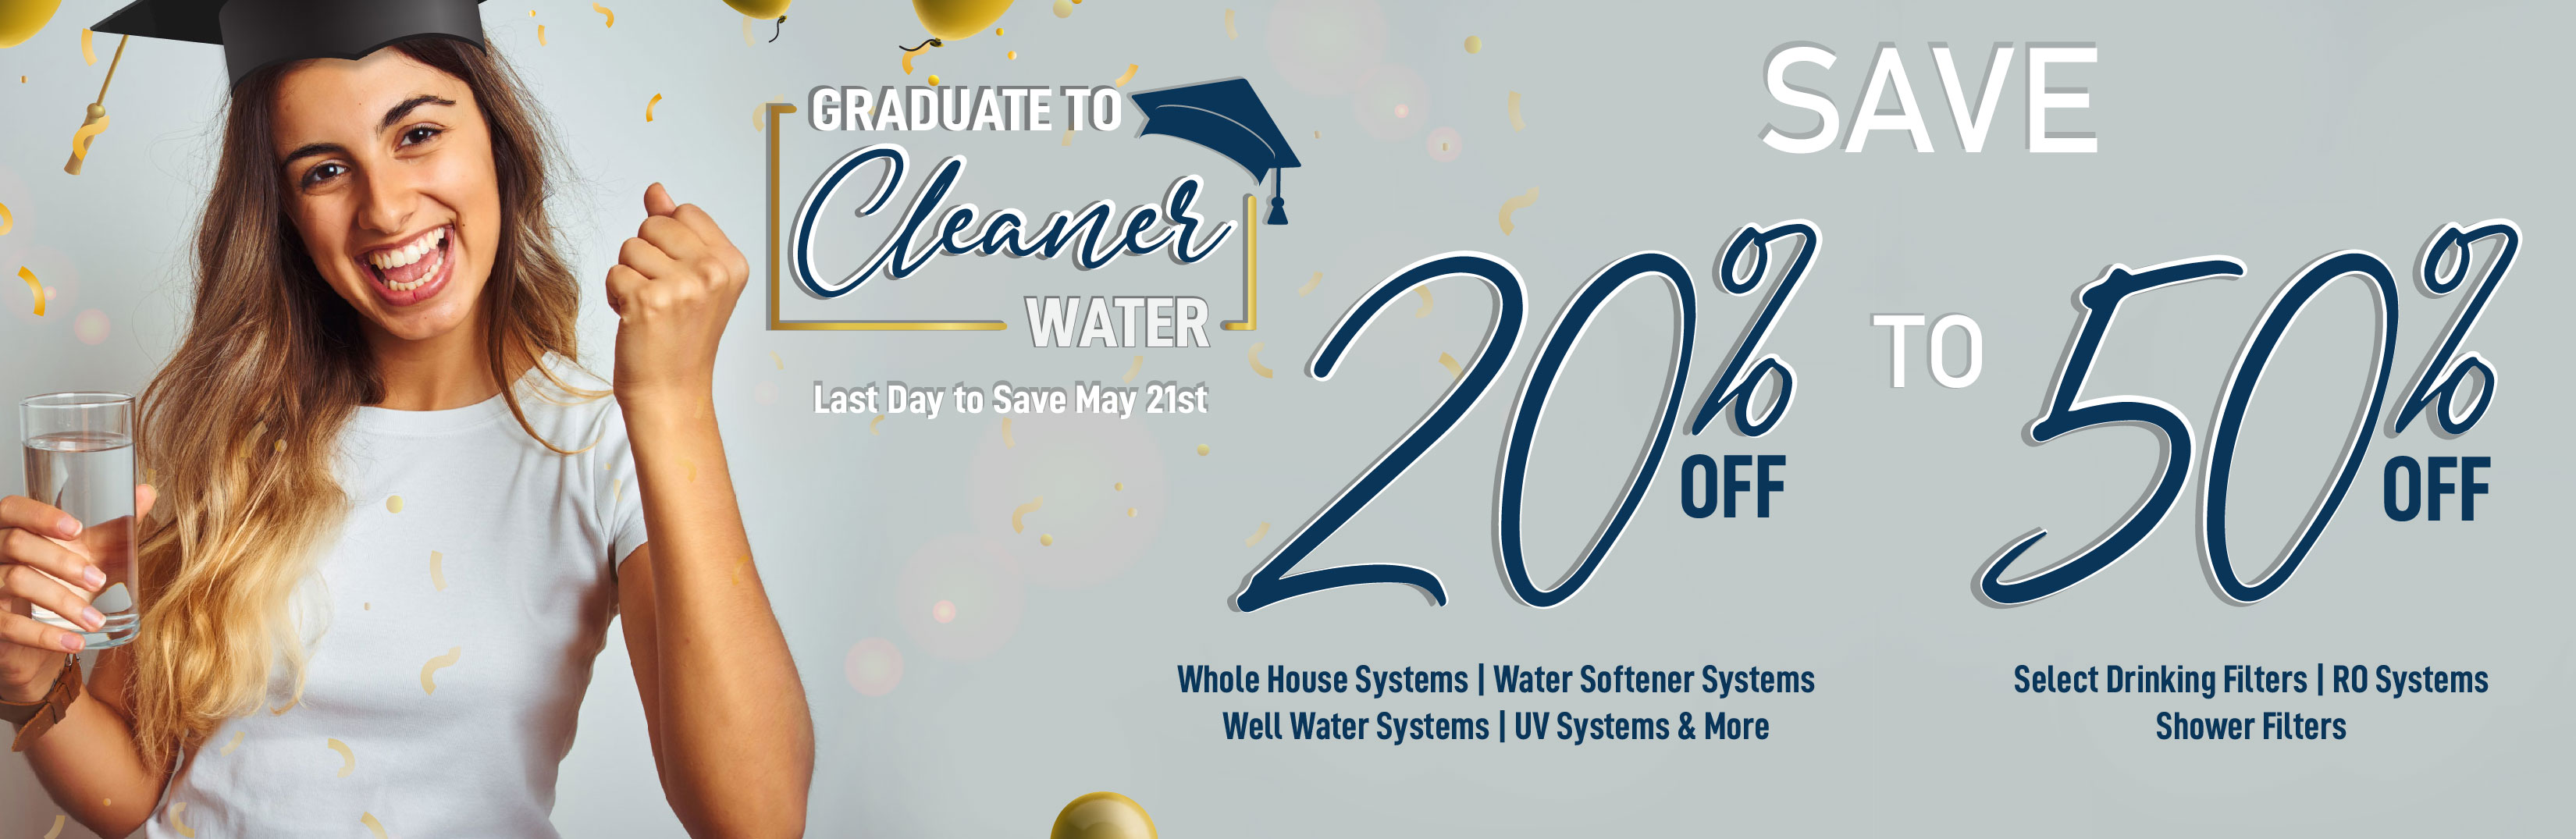 Graduate to Cleaner Water Sale - 20% to 50% off - ends May 28th